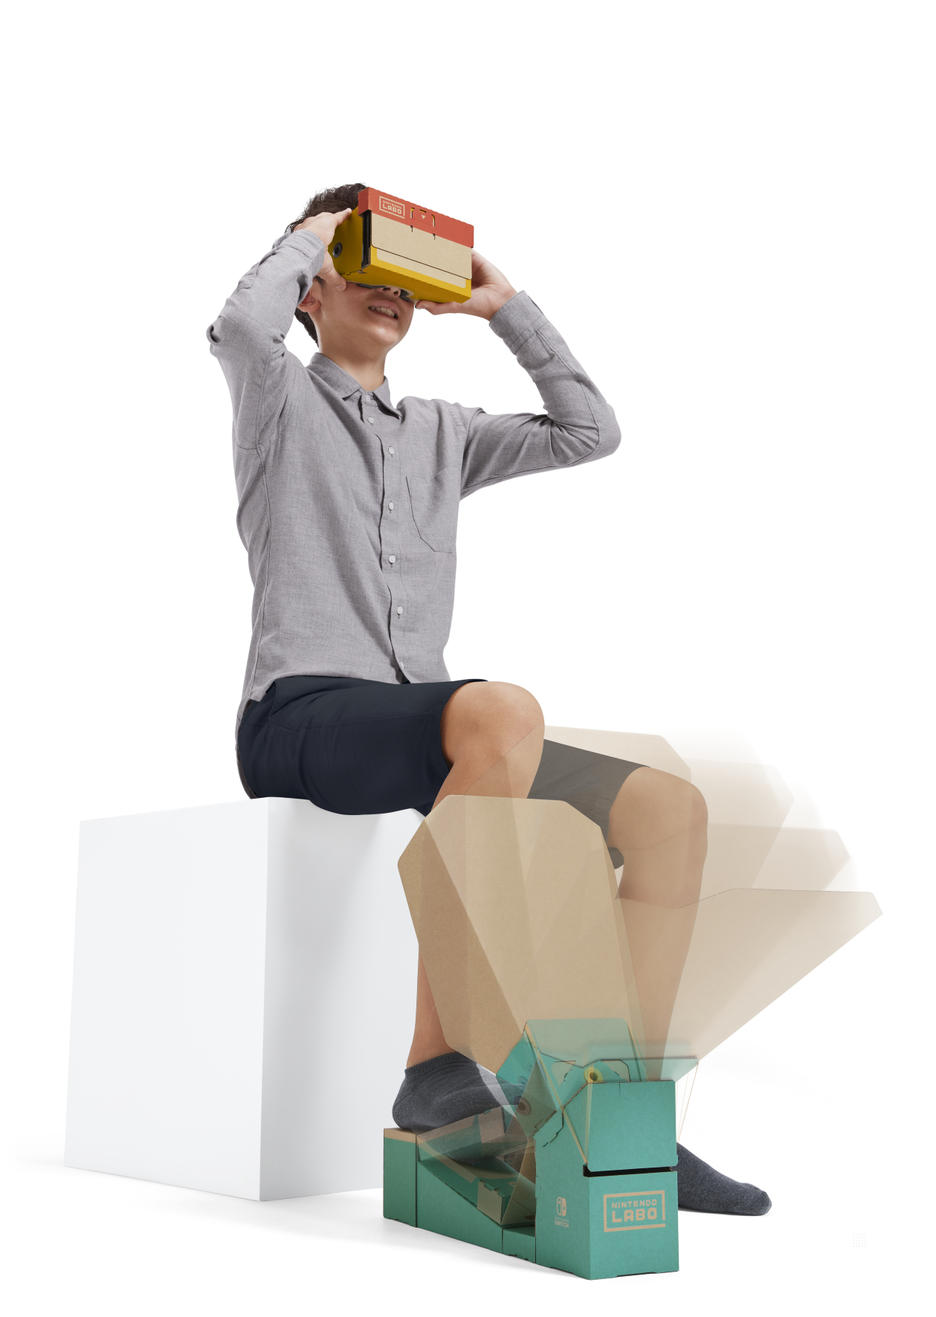 Nintendo Labo: VR Expansion Set 2